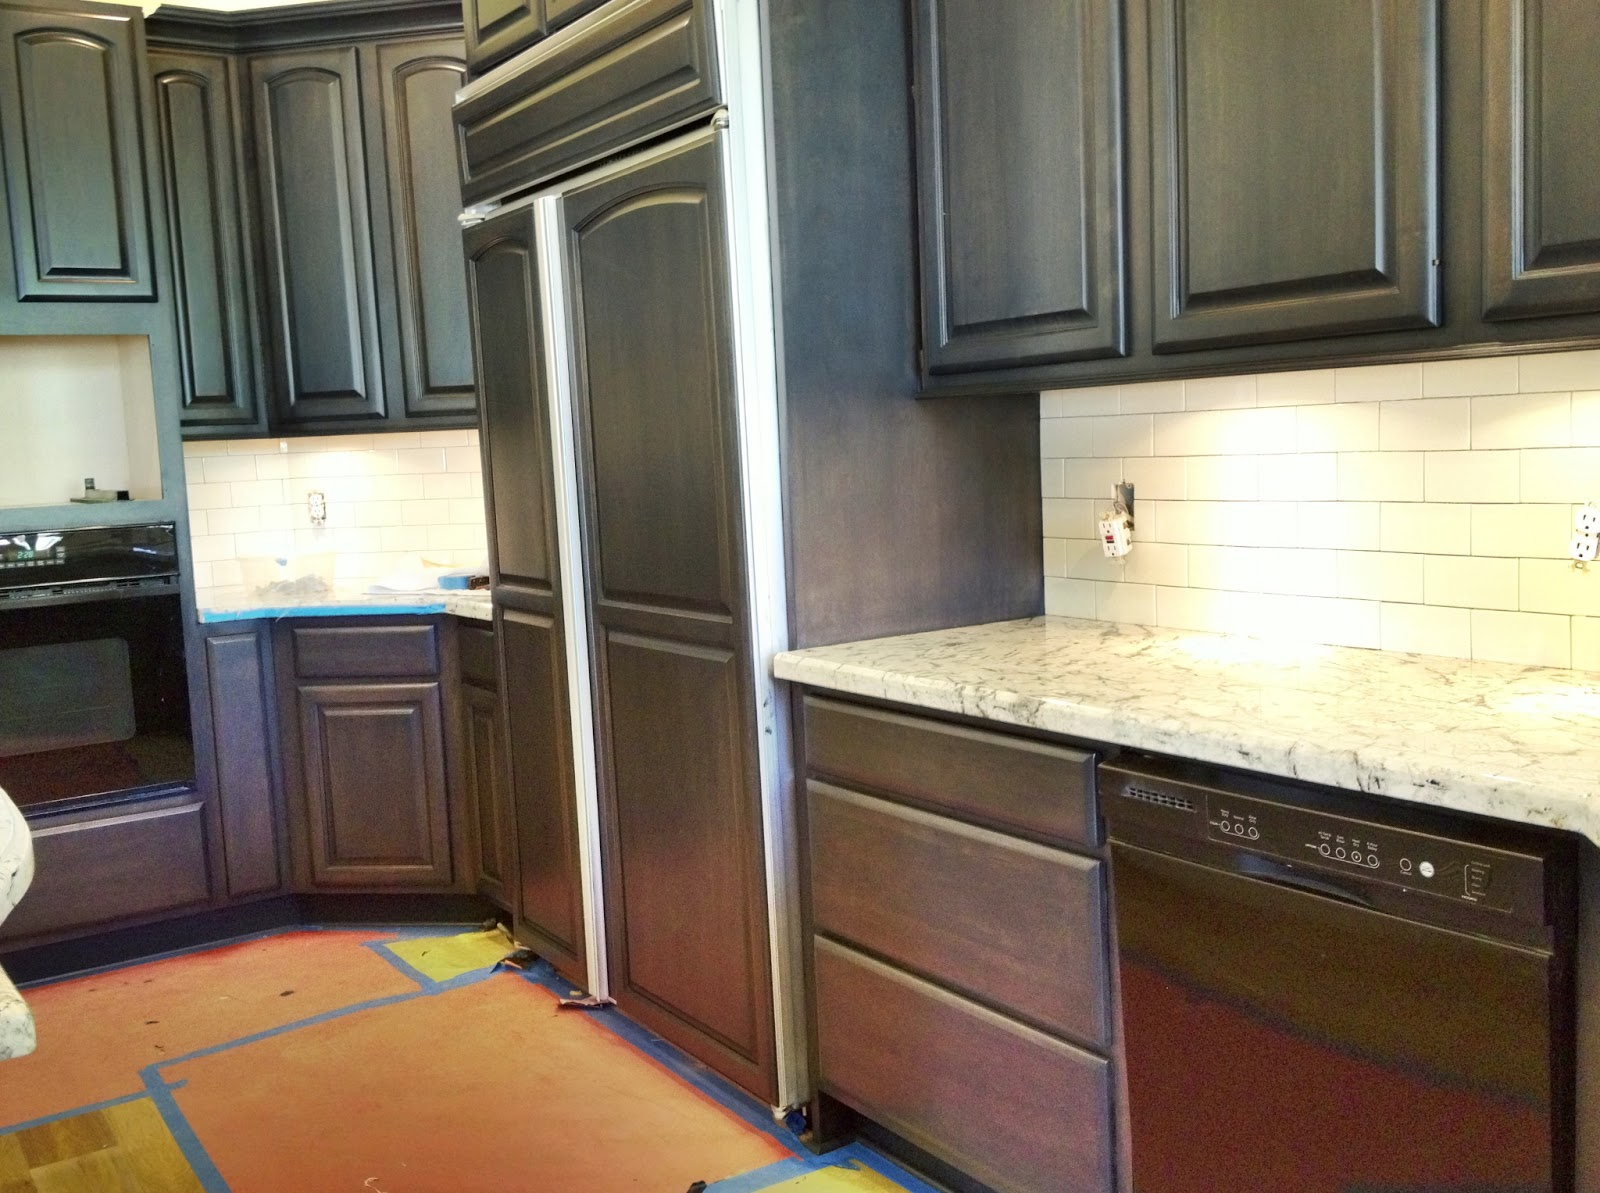 How To Strip And Refinish Kitchen Cabinets Ideas How To Refinish Kitchen Cabinets Without Stripping